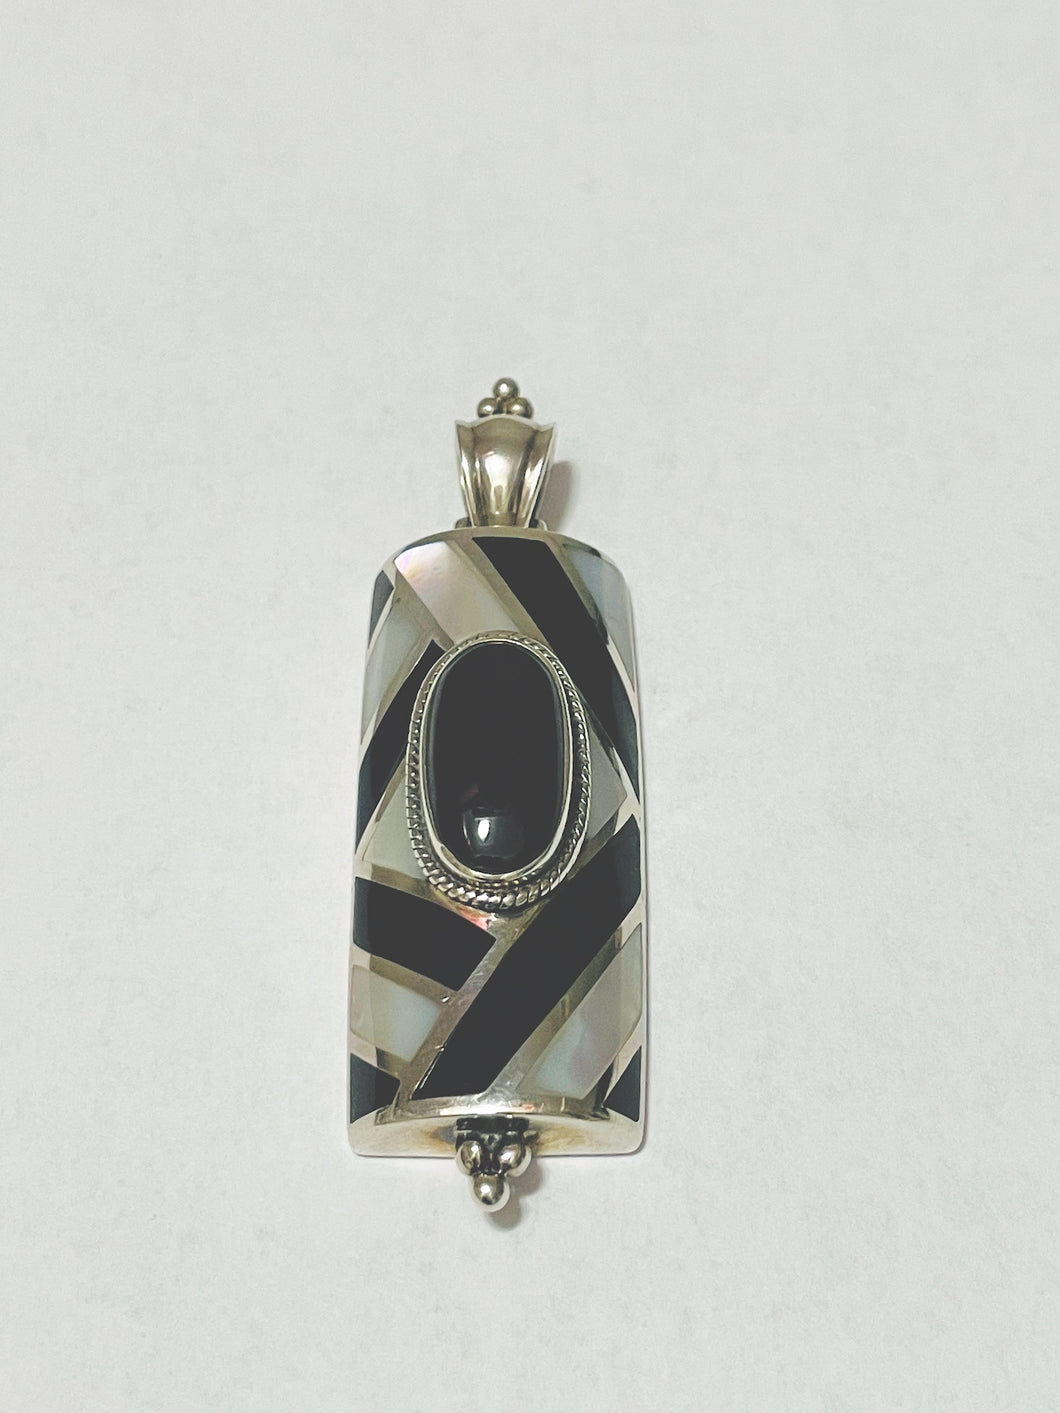 This lovely pendant consists of a lovely Mother of Pearl and Black Onyx design with a large Onyx stone in the middle.  It measures 2.75 X 1.24 inches.  We include a complimentary Sterling Silver chain to complete the over all look.